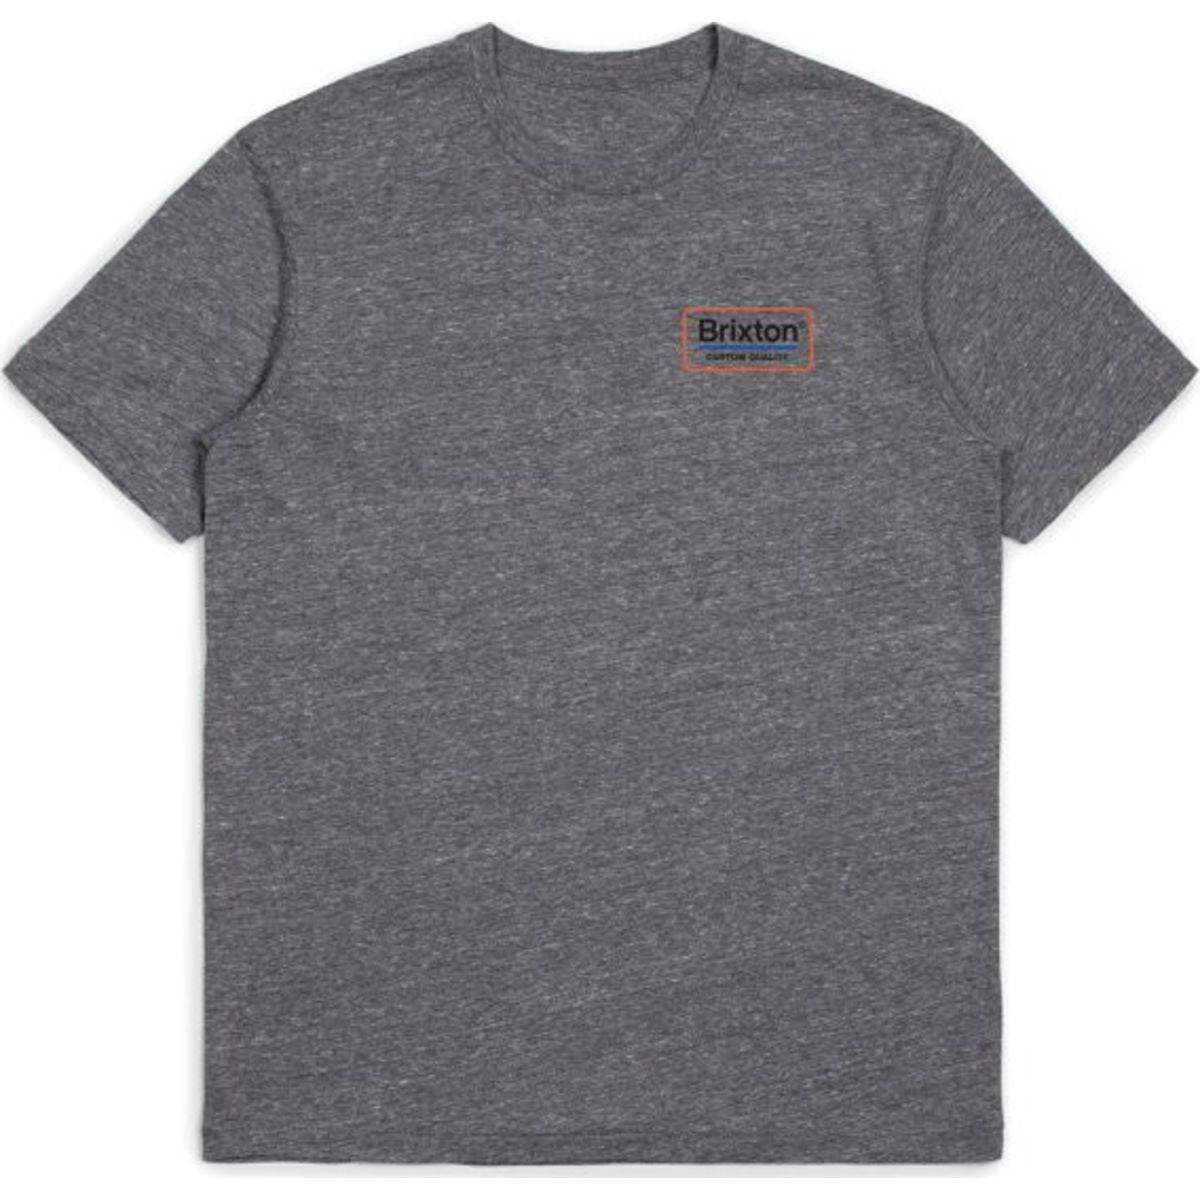 PALMER S/S PREMIUM TEE - WASHED NAVY/BRICK